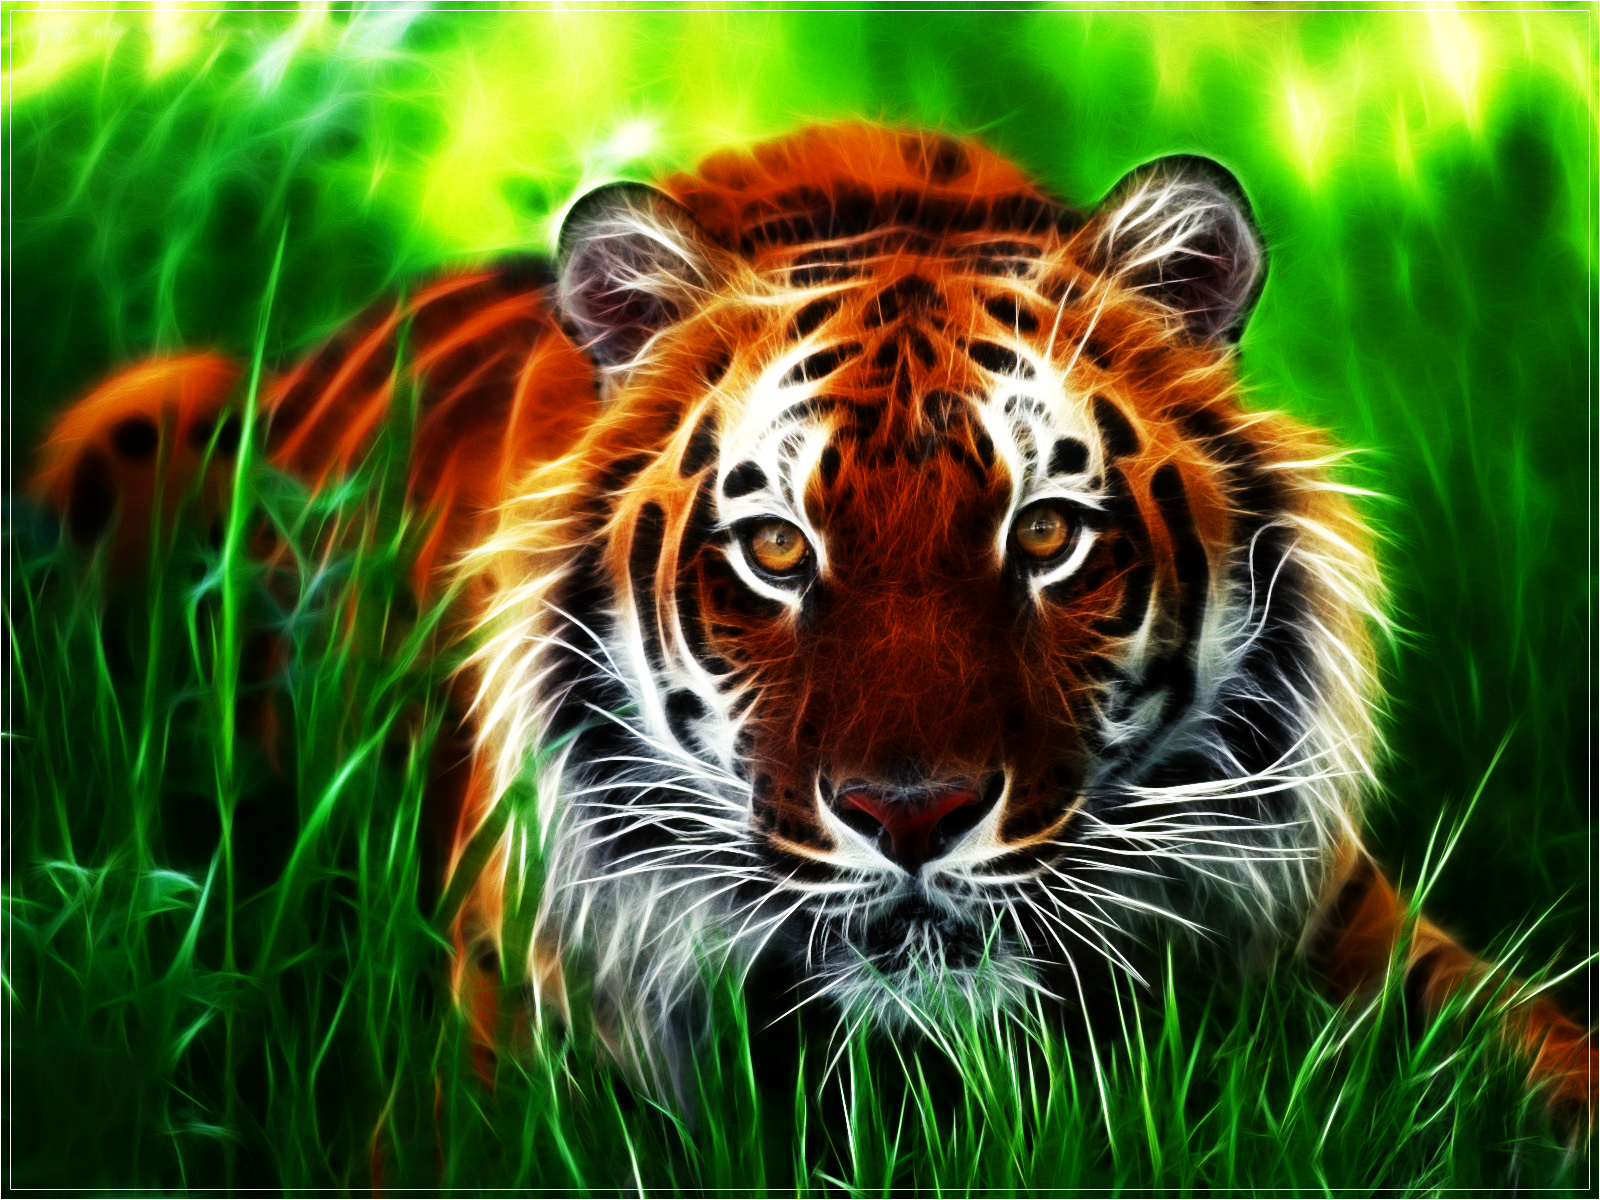 national geographics tiger wallpaper